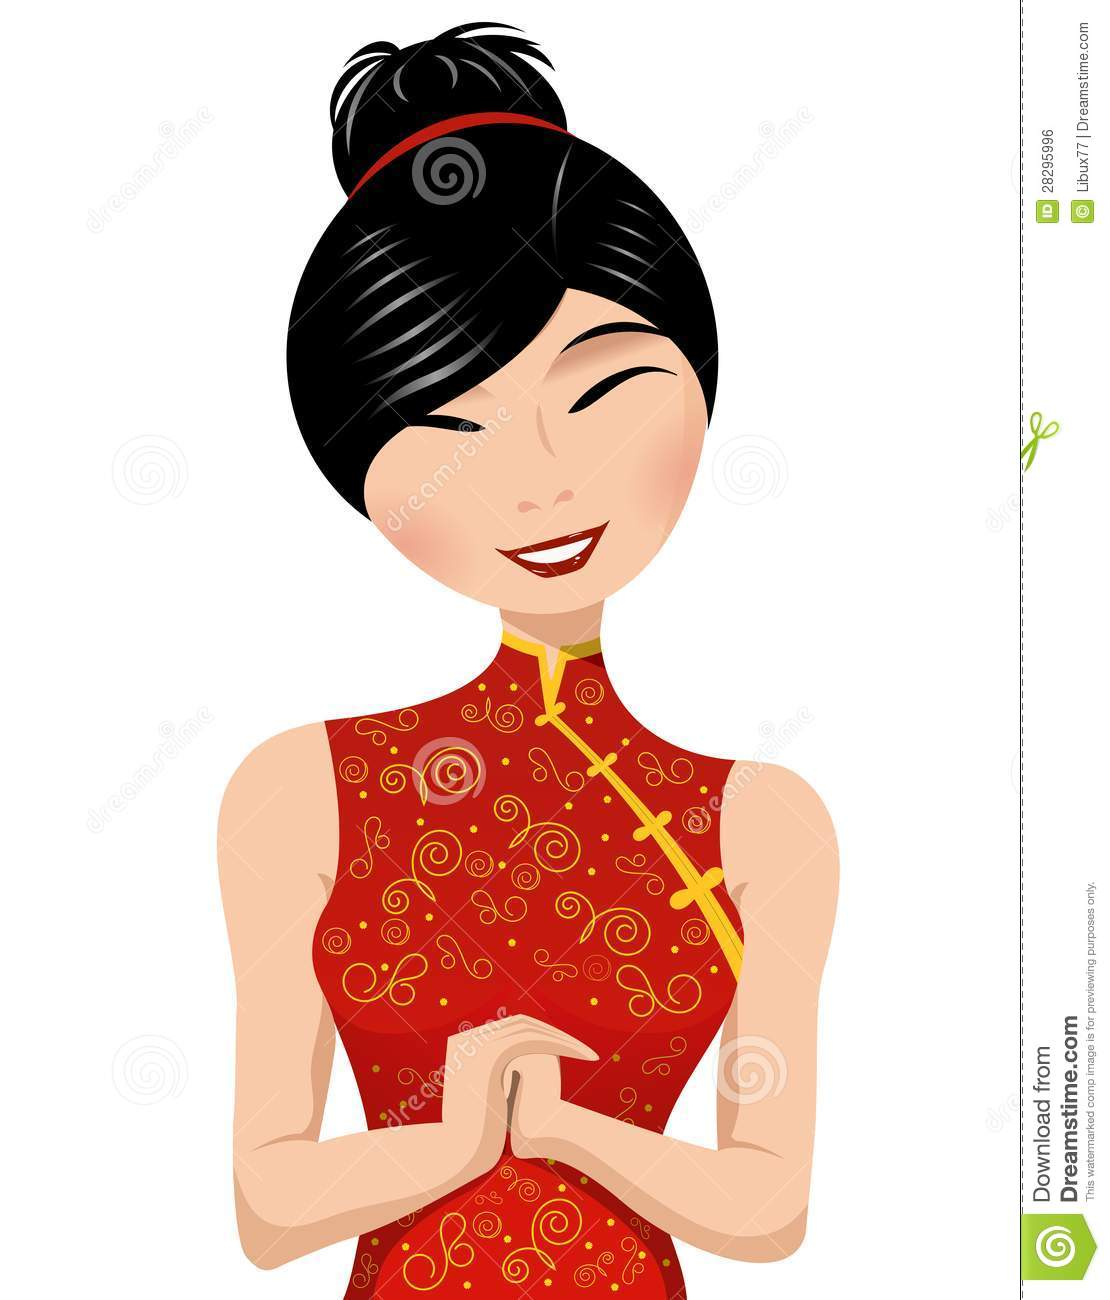 Clipart of a woman and a girl clip stock Chinese Girl Clipart - Clipart Kid clip stock